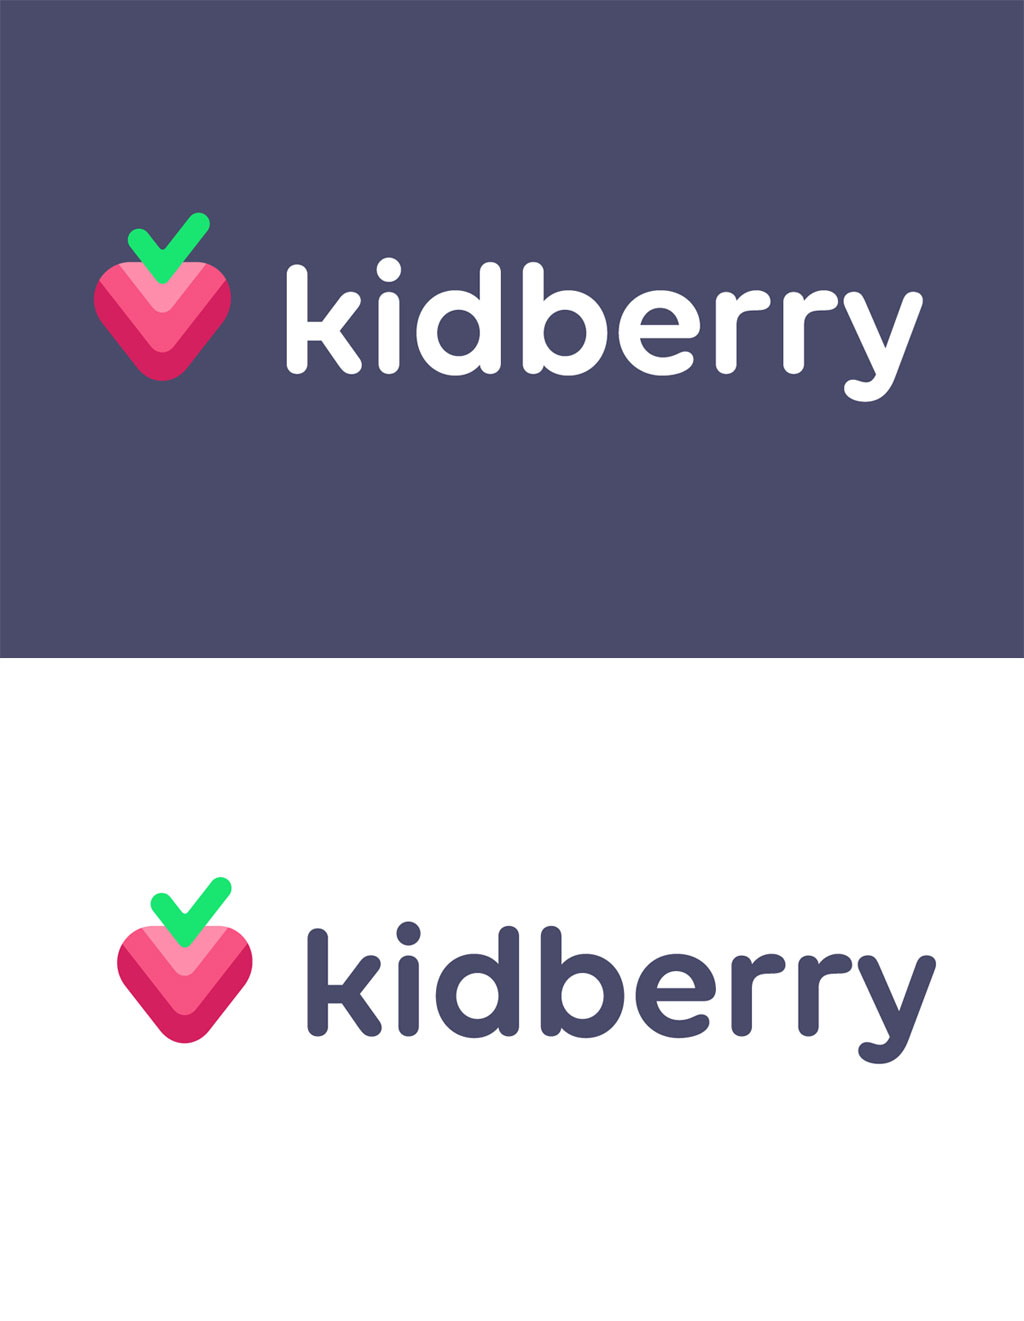 fruit logo design kidberry by sergey yakovenko